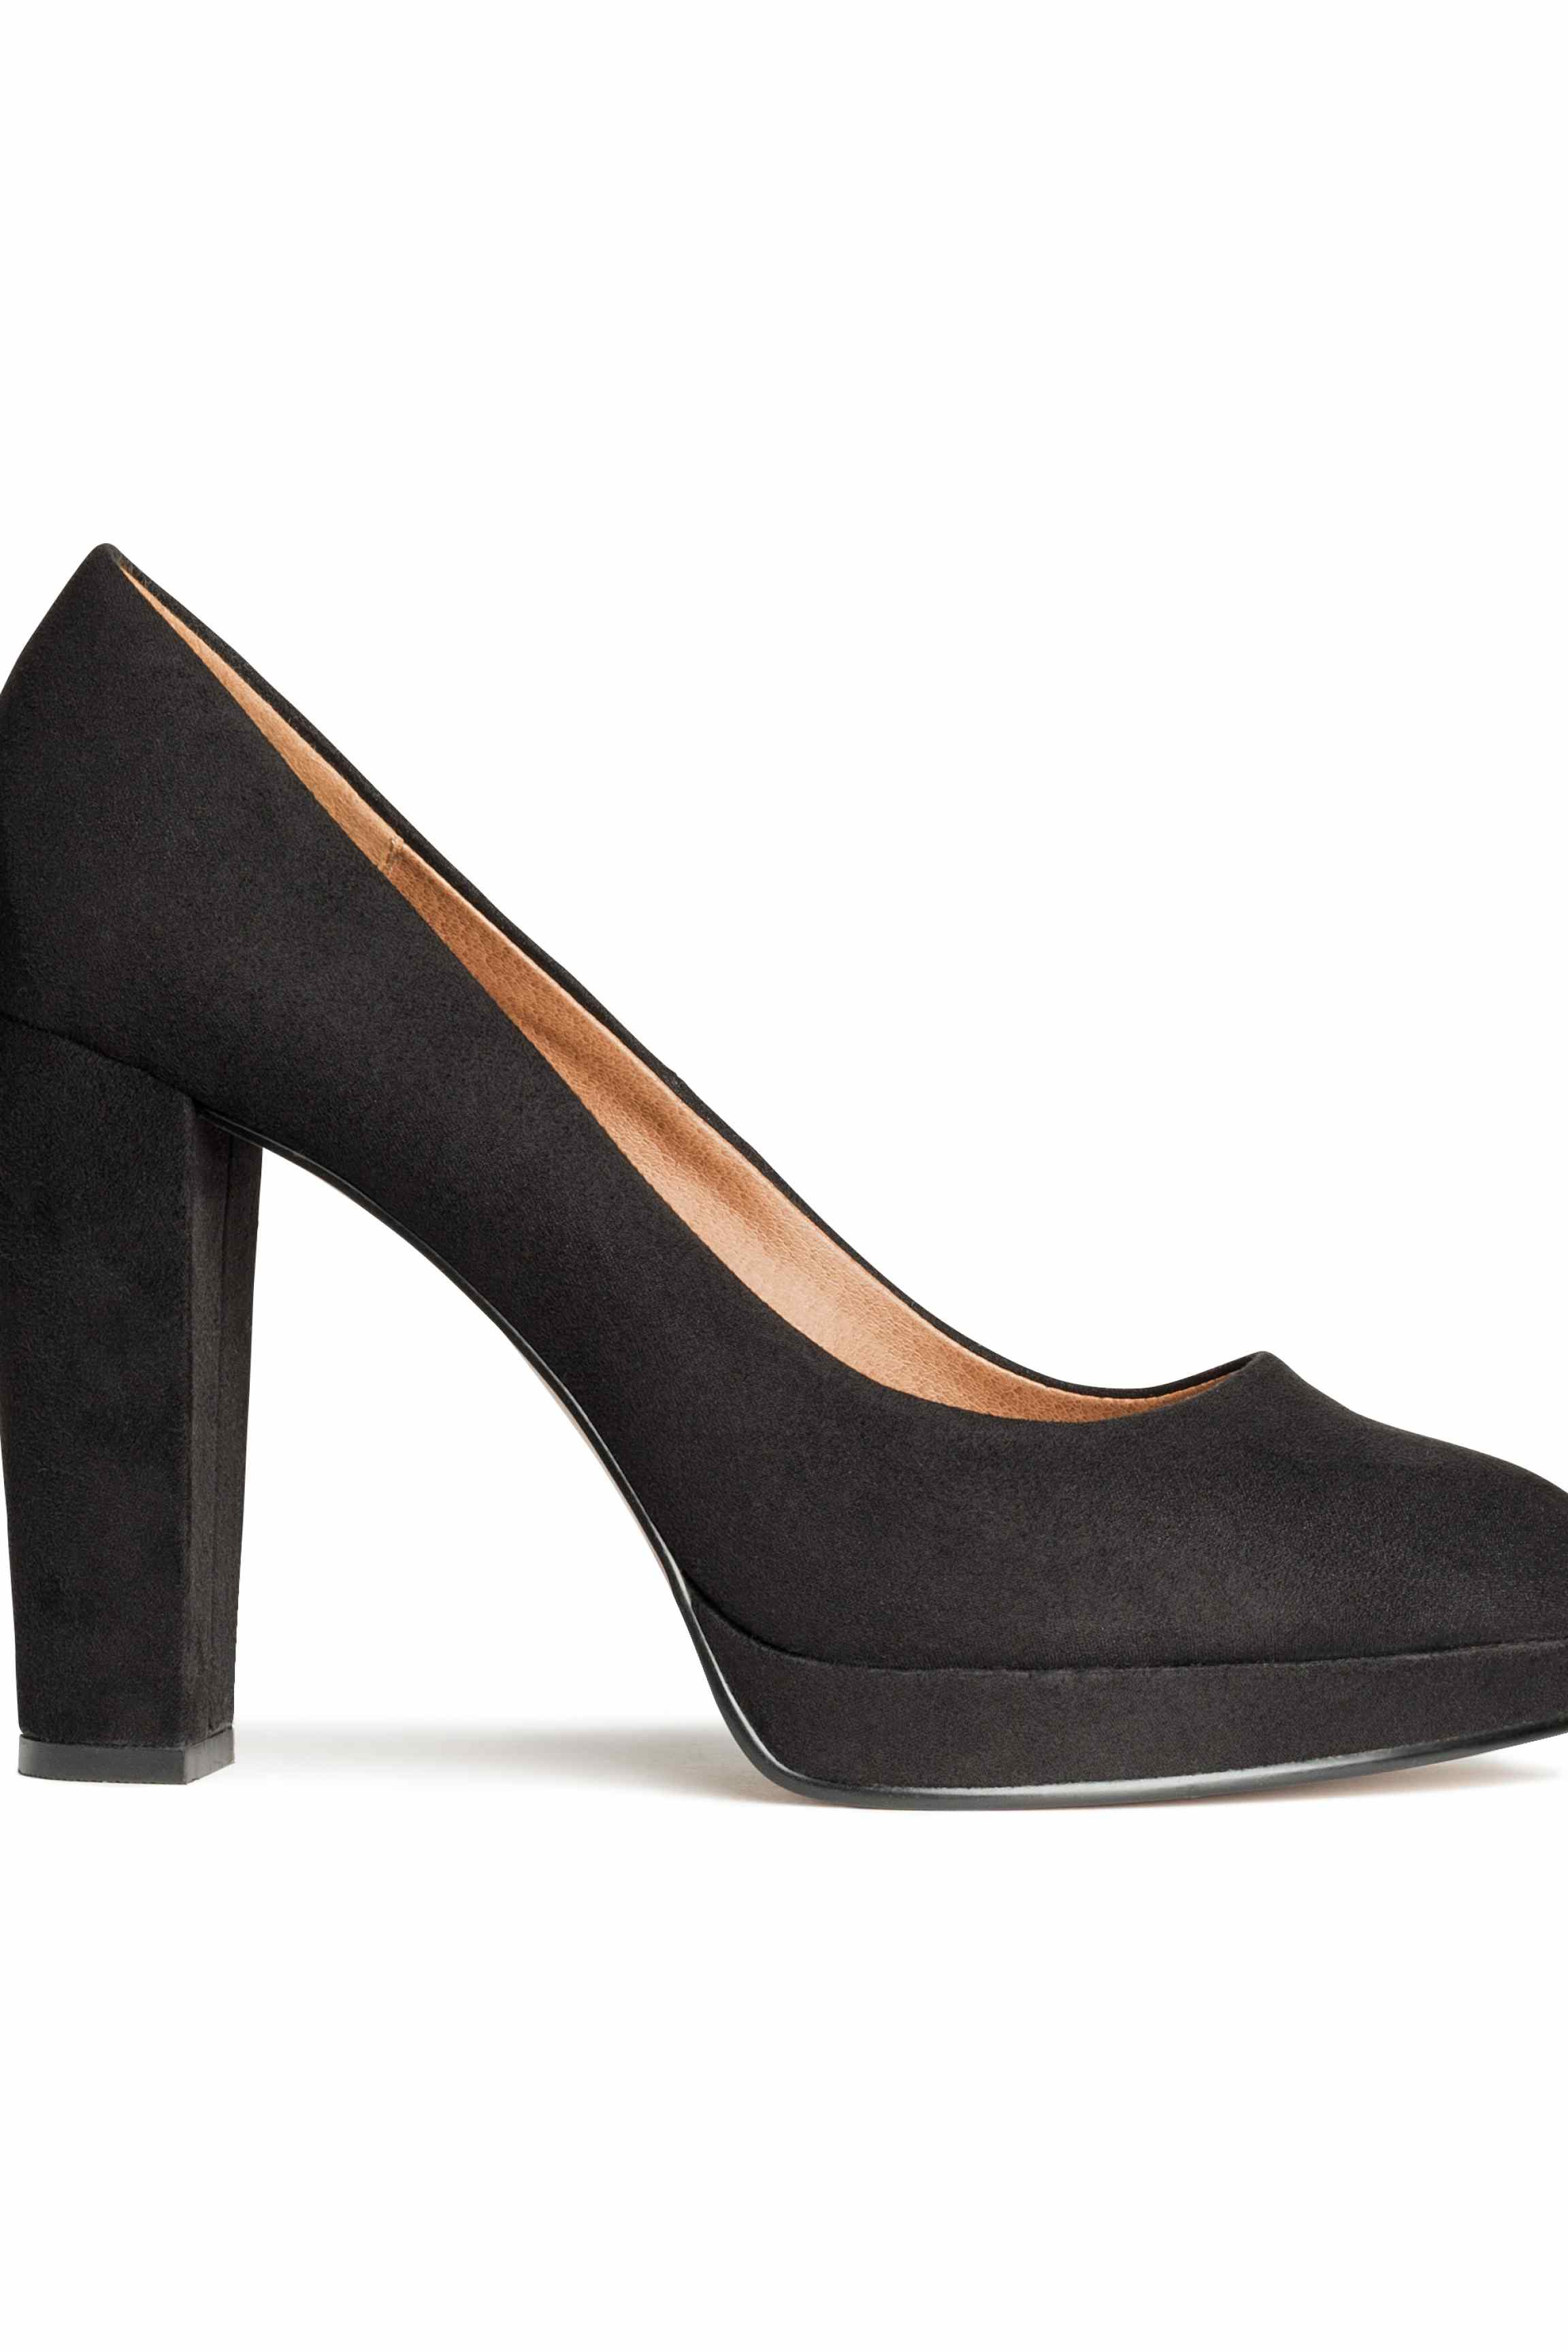 h m suede court shoes in black lyst